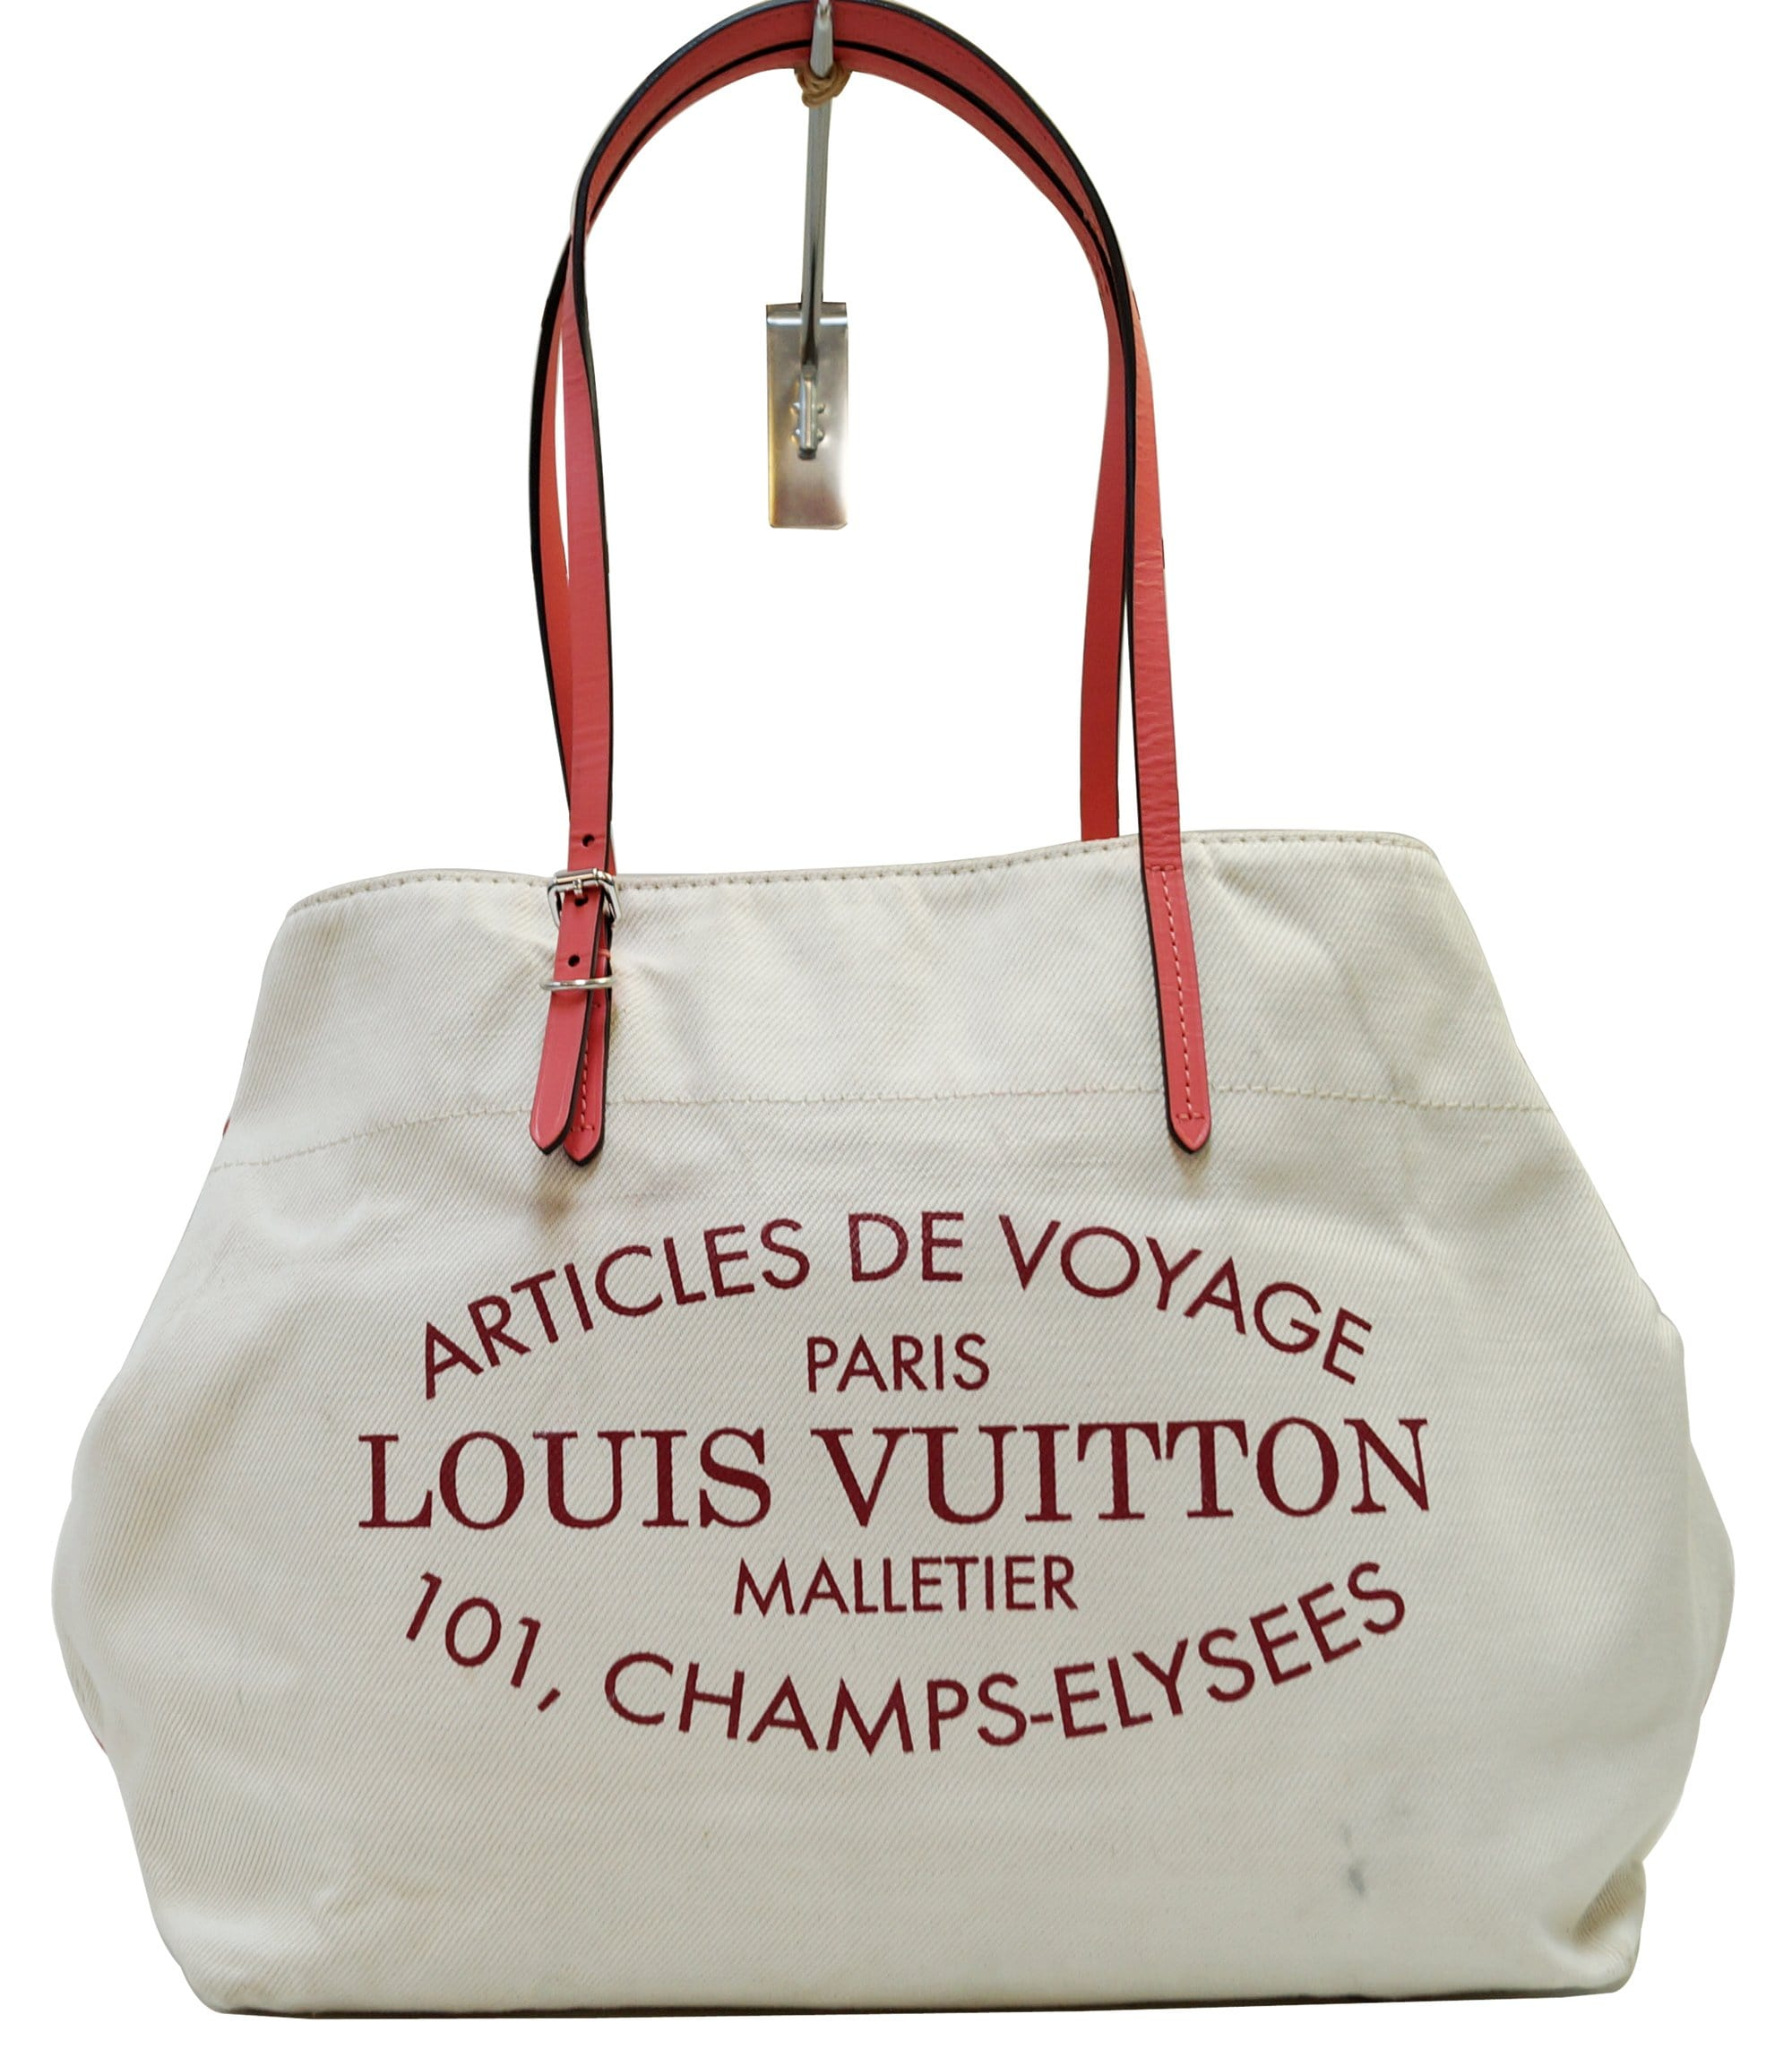 97bf965487d7 LOUIS VUITTON Articles De Voyage Cabas Waikiki GM Shoulder Bag